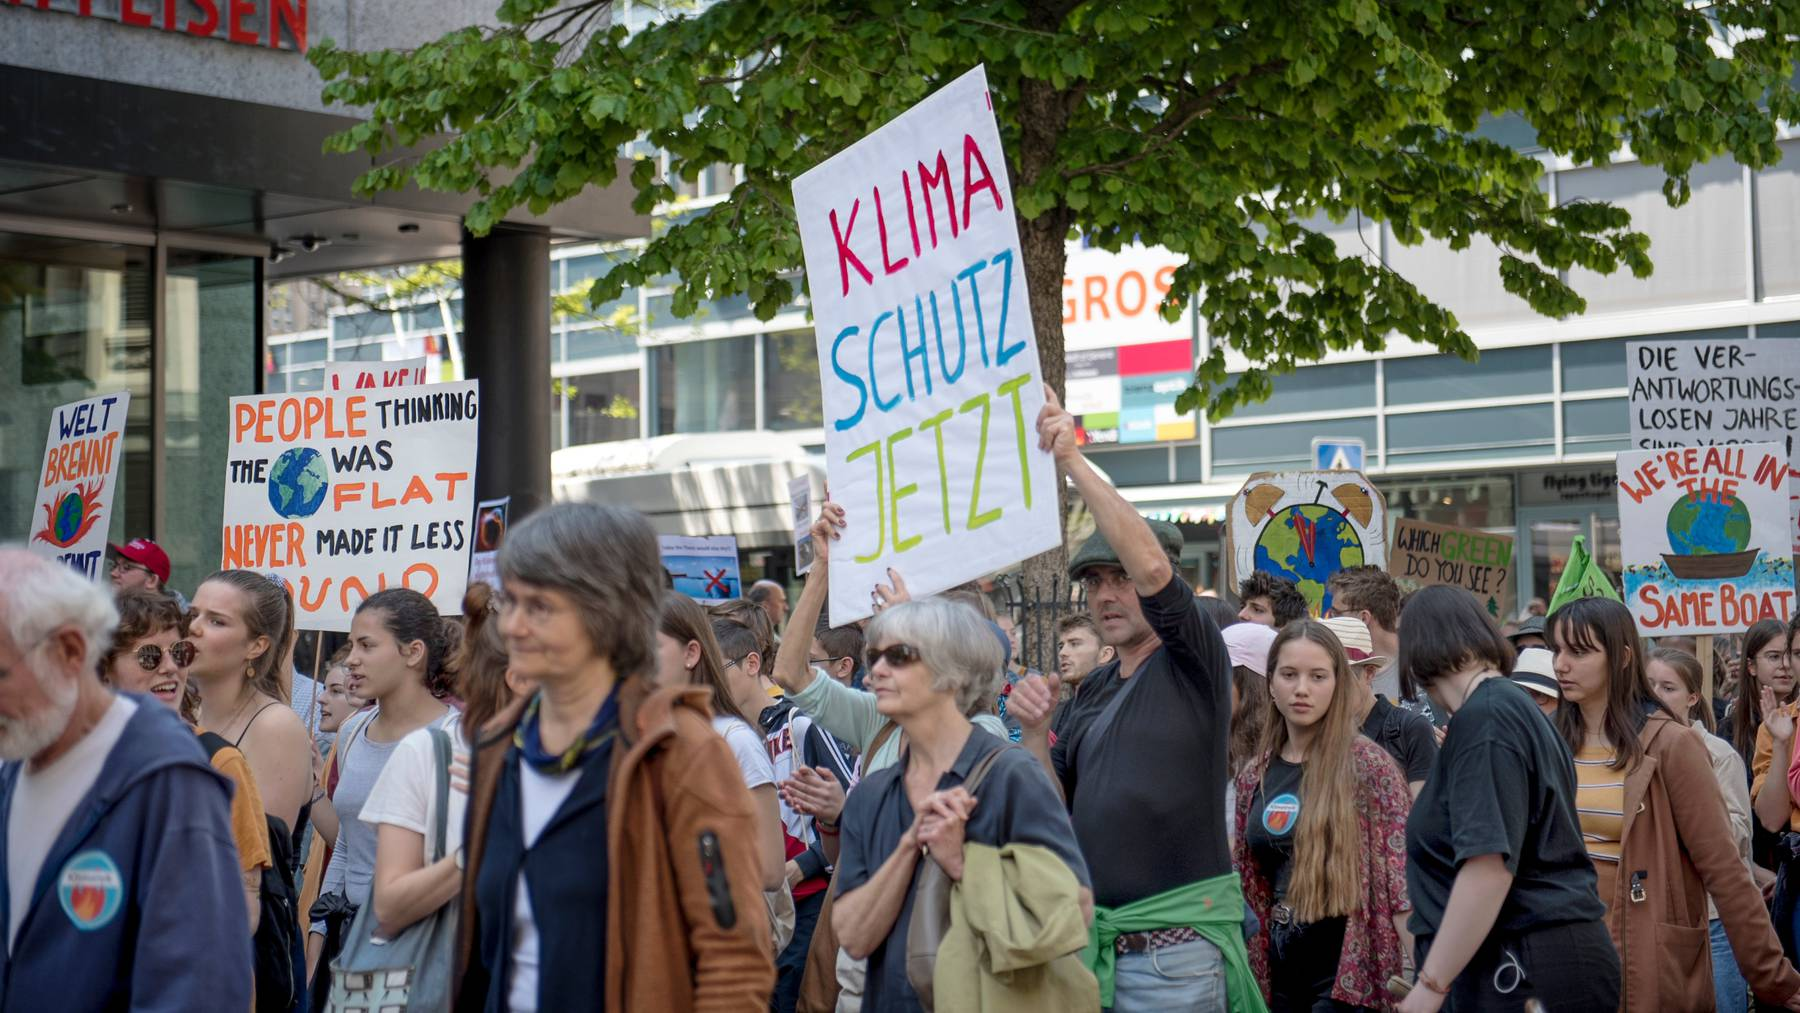 Klimademo am 24. Mai 2019 in St.Gallen